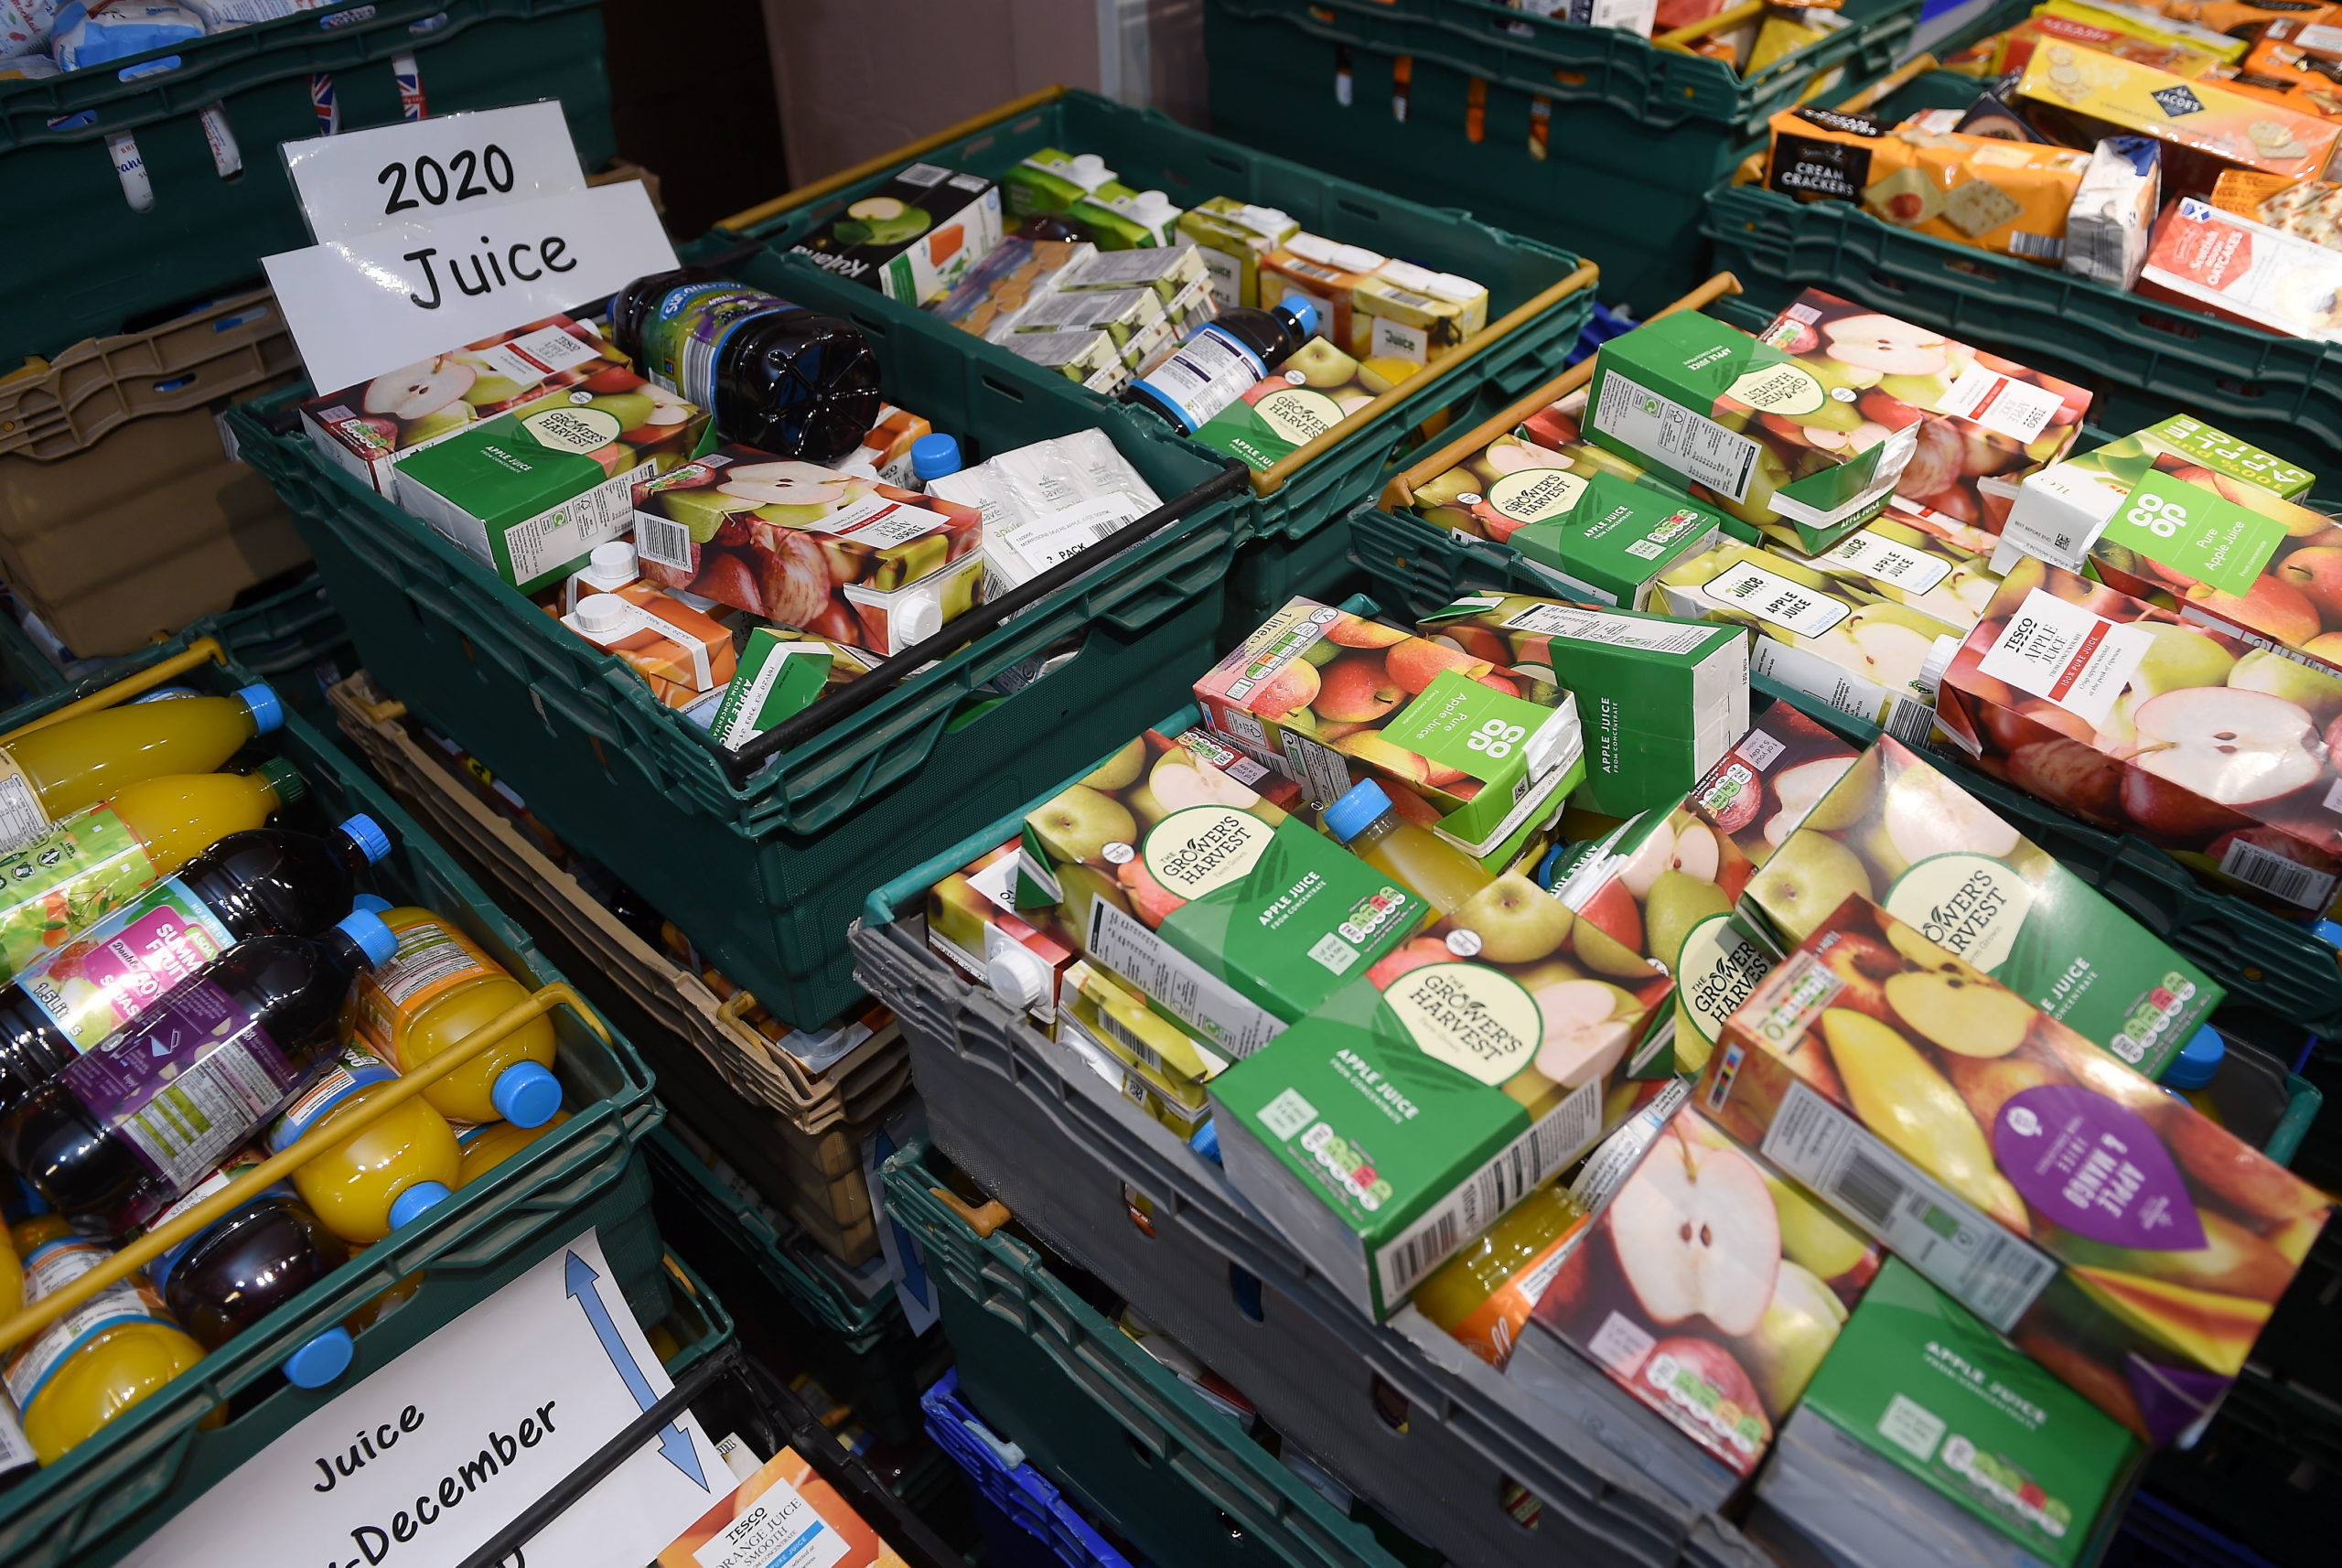 Perth and Kinross residents are being urged to continue donating to foodbanks.